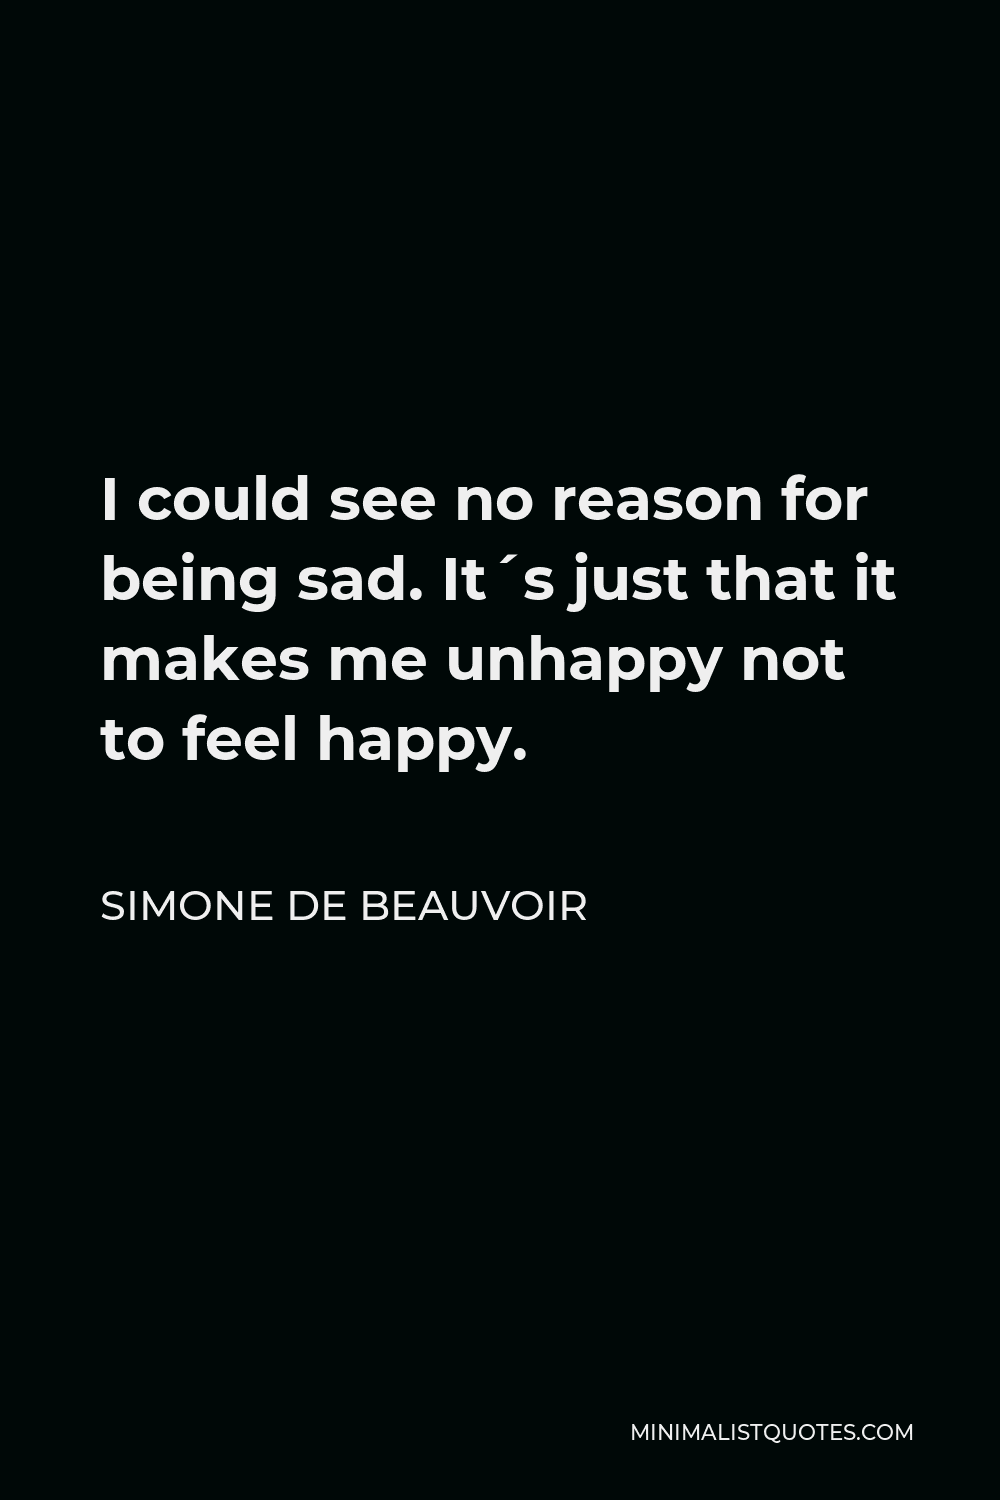 For being unhappy reasons 8 Reasons